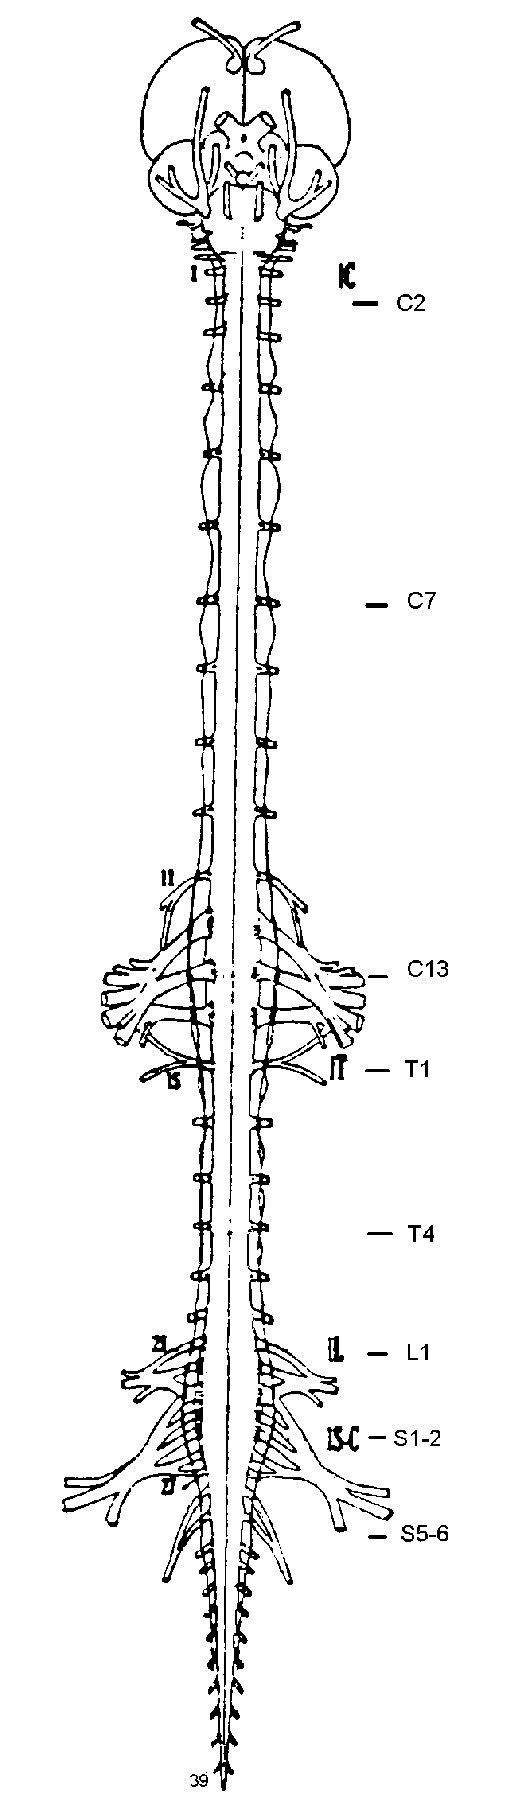 hight resolution of 11 central nervous system emerging cranial and spinal nerves and sympathetic trunk of the pigeon